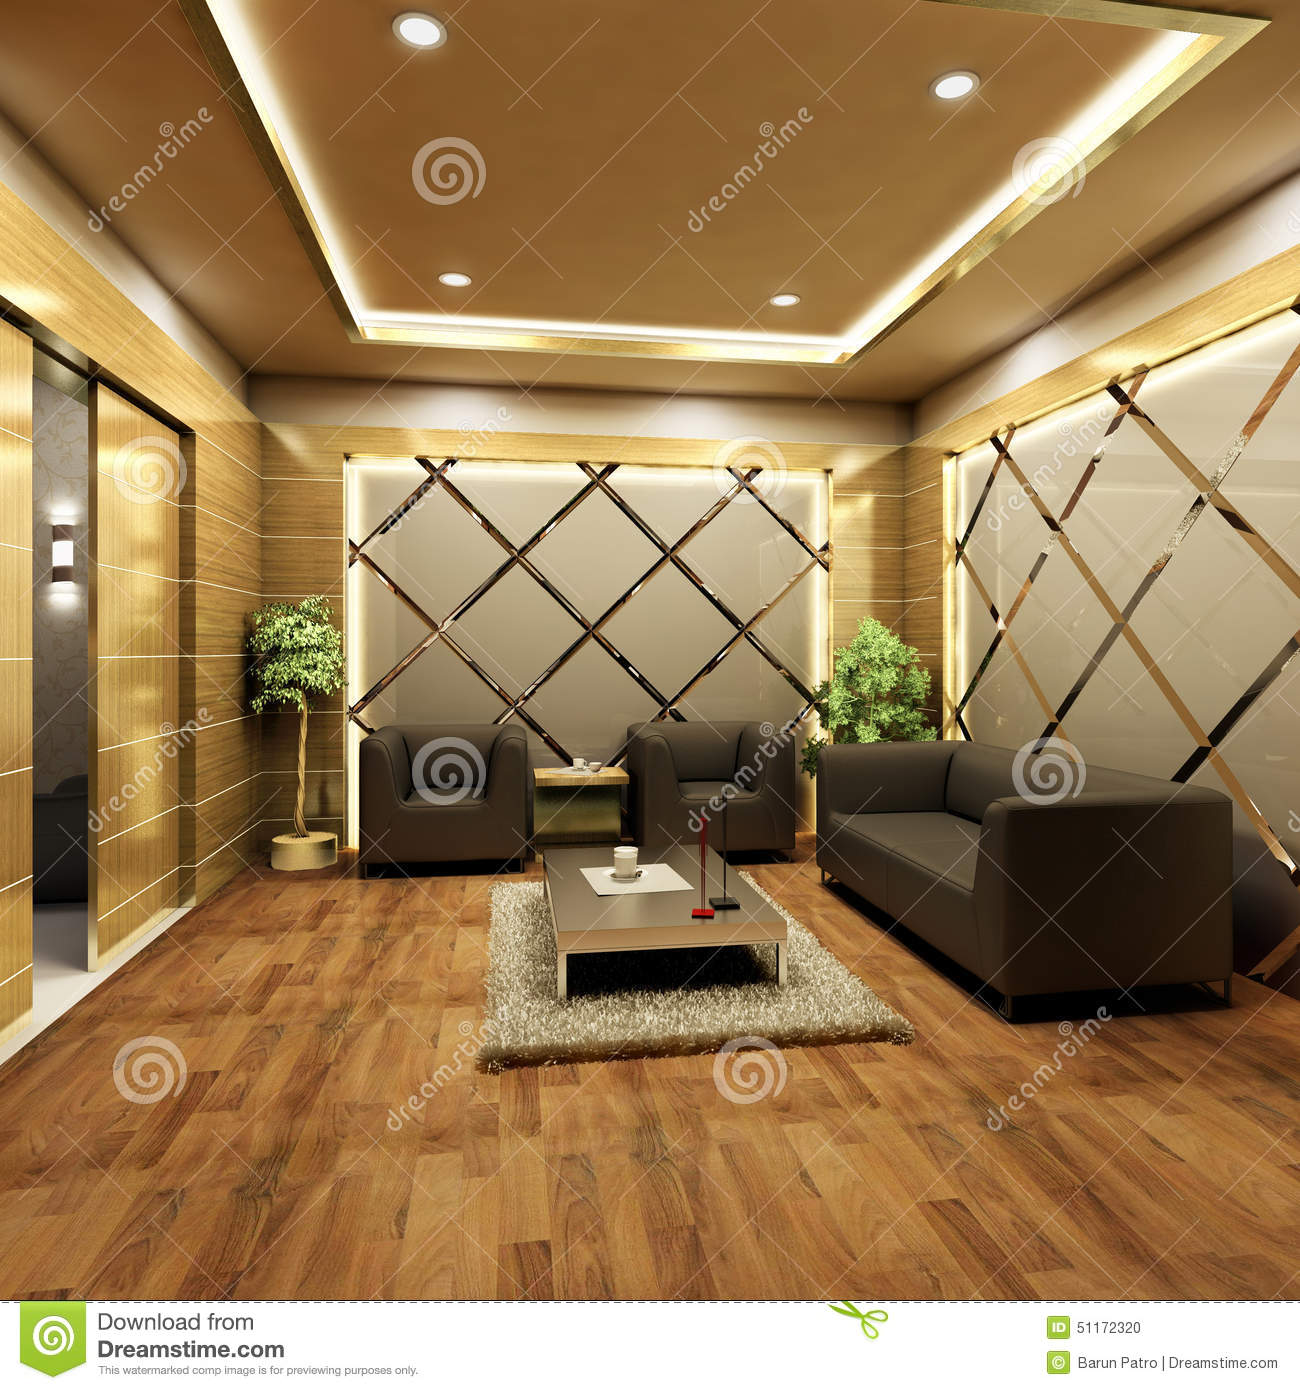 Lobby interior design stock illustration illustration of for Decor interior design